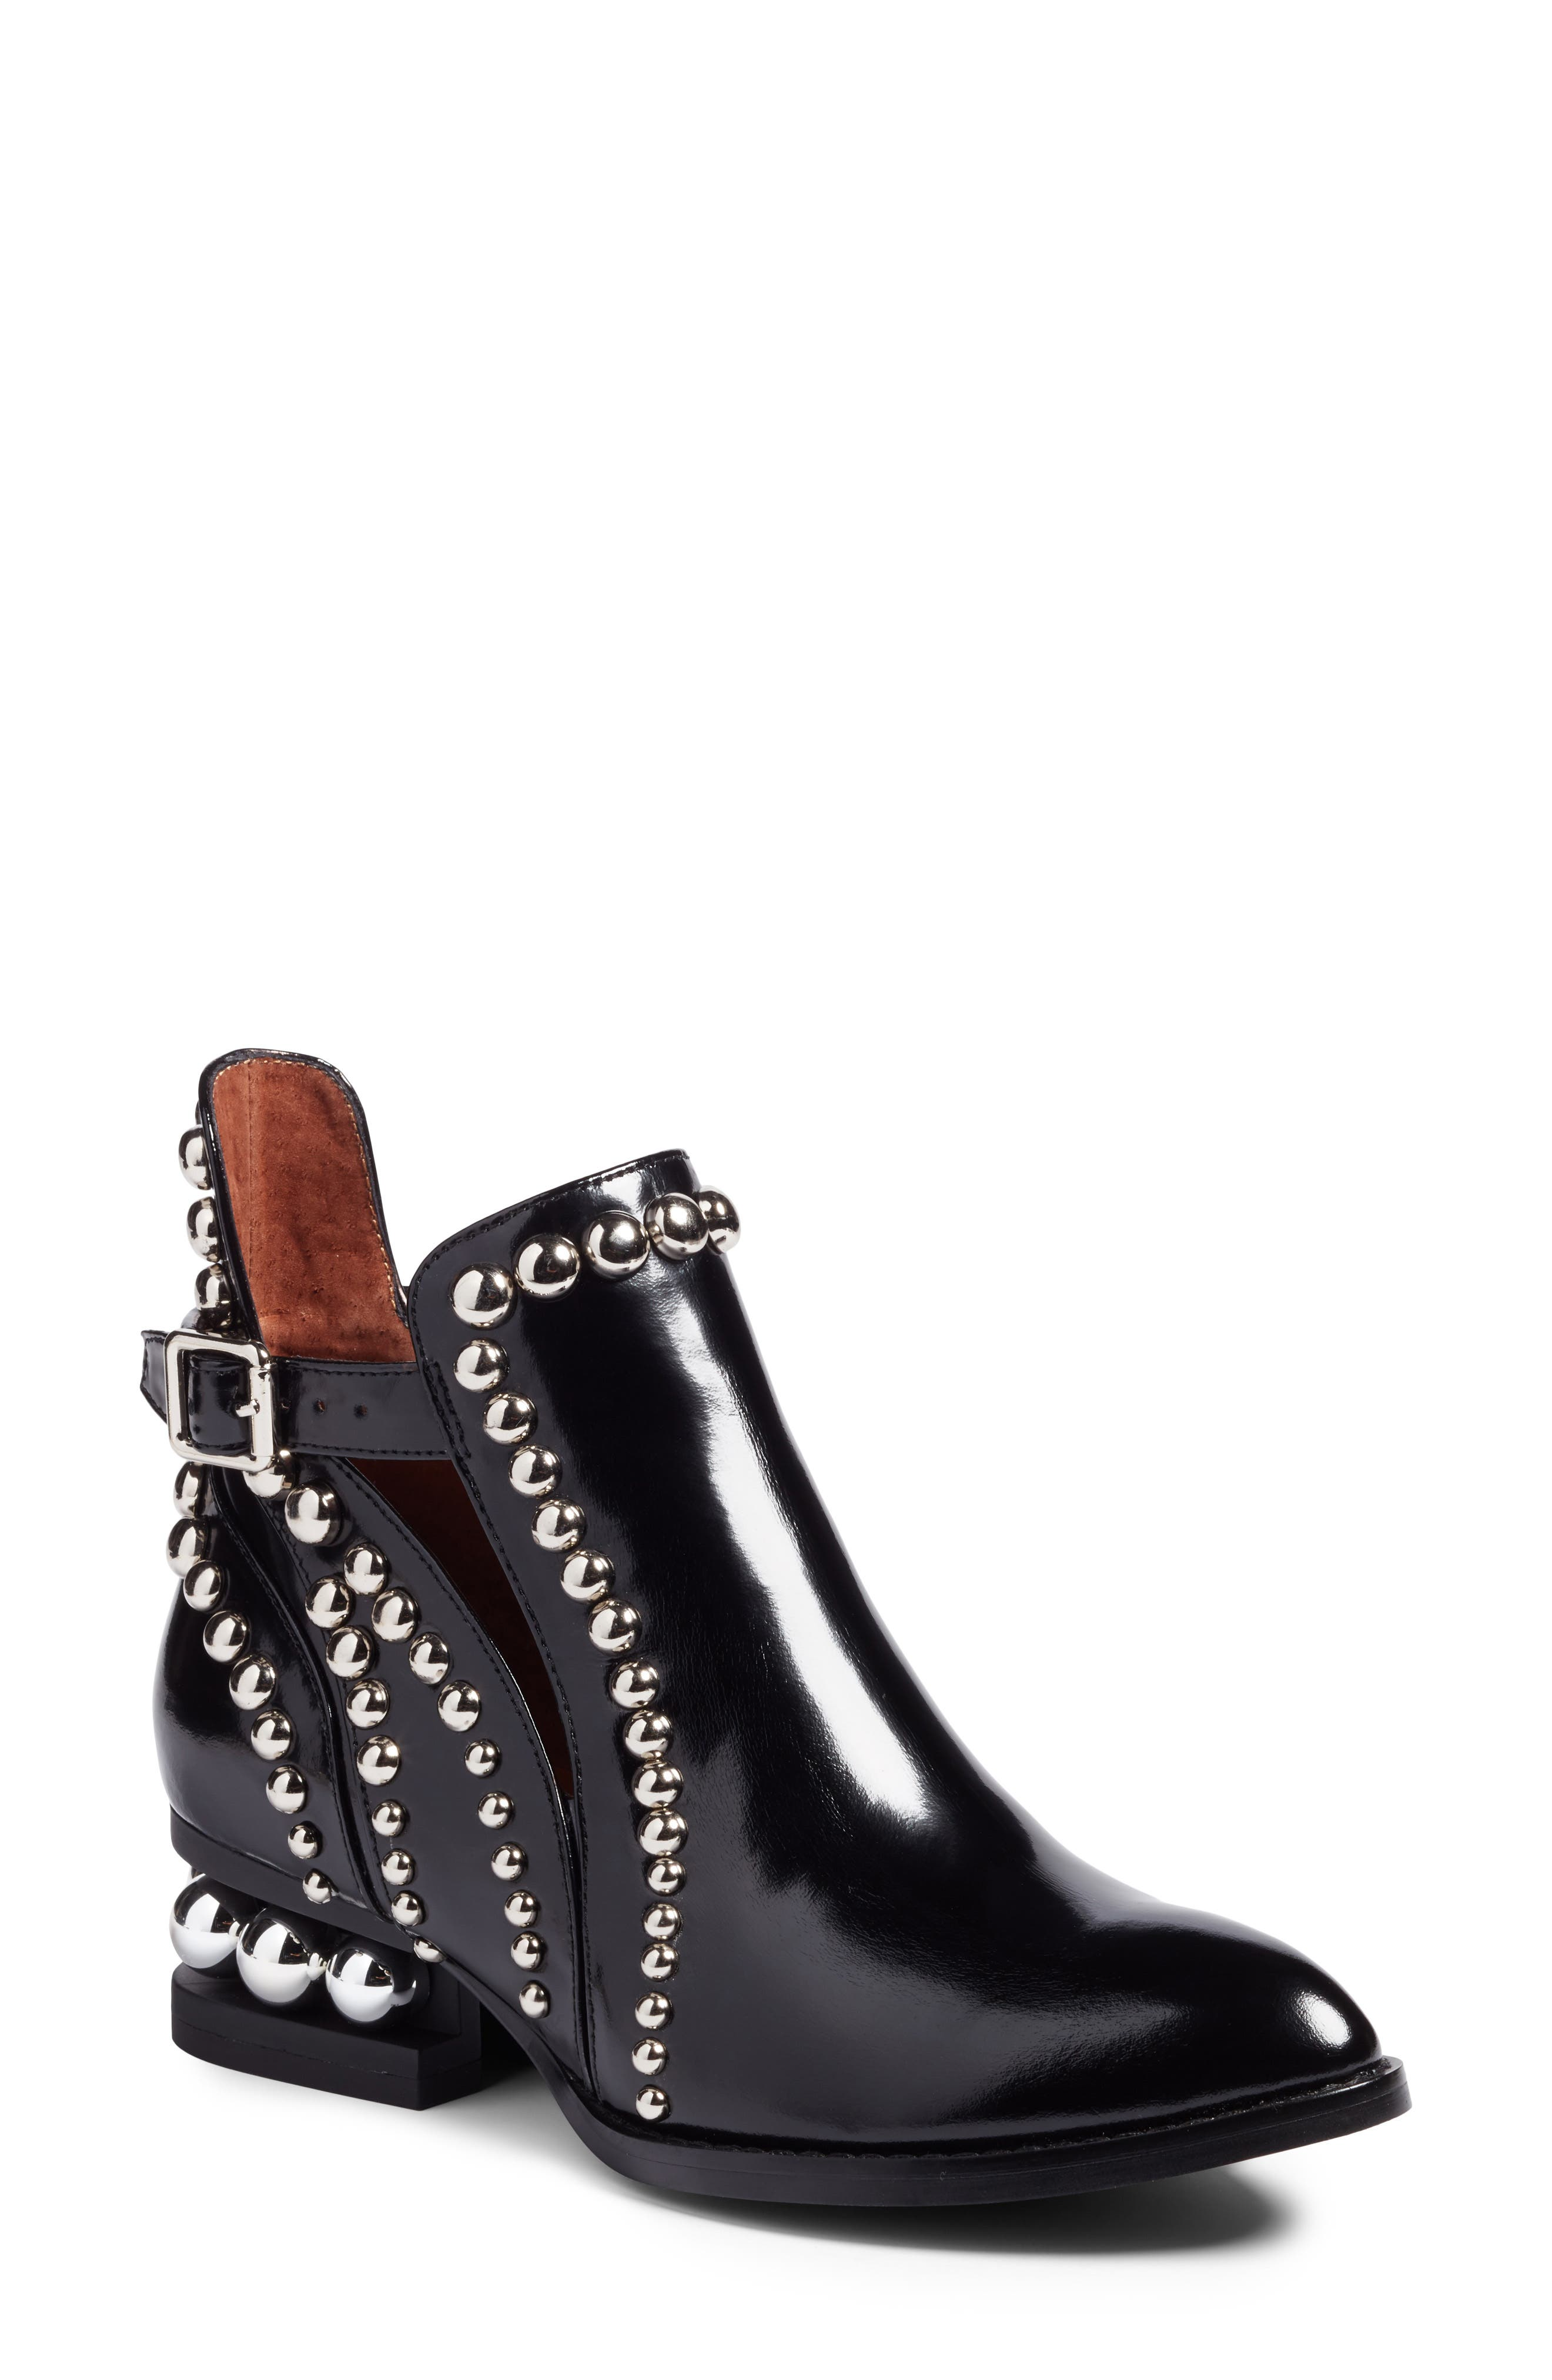 JEFFREY CAMPBELL, Rylance Studded Bootie, Main thumbnail 1, color, BLACK BOX SILVER LEATHER